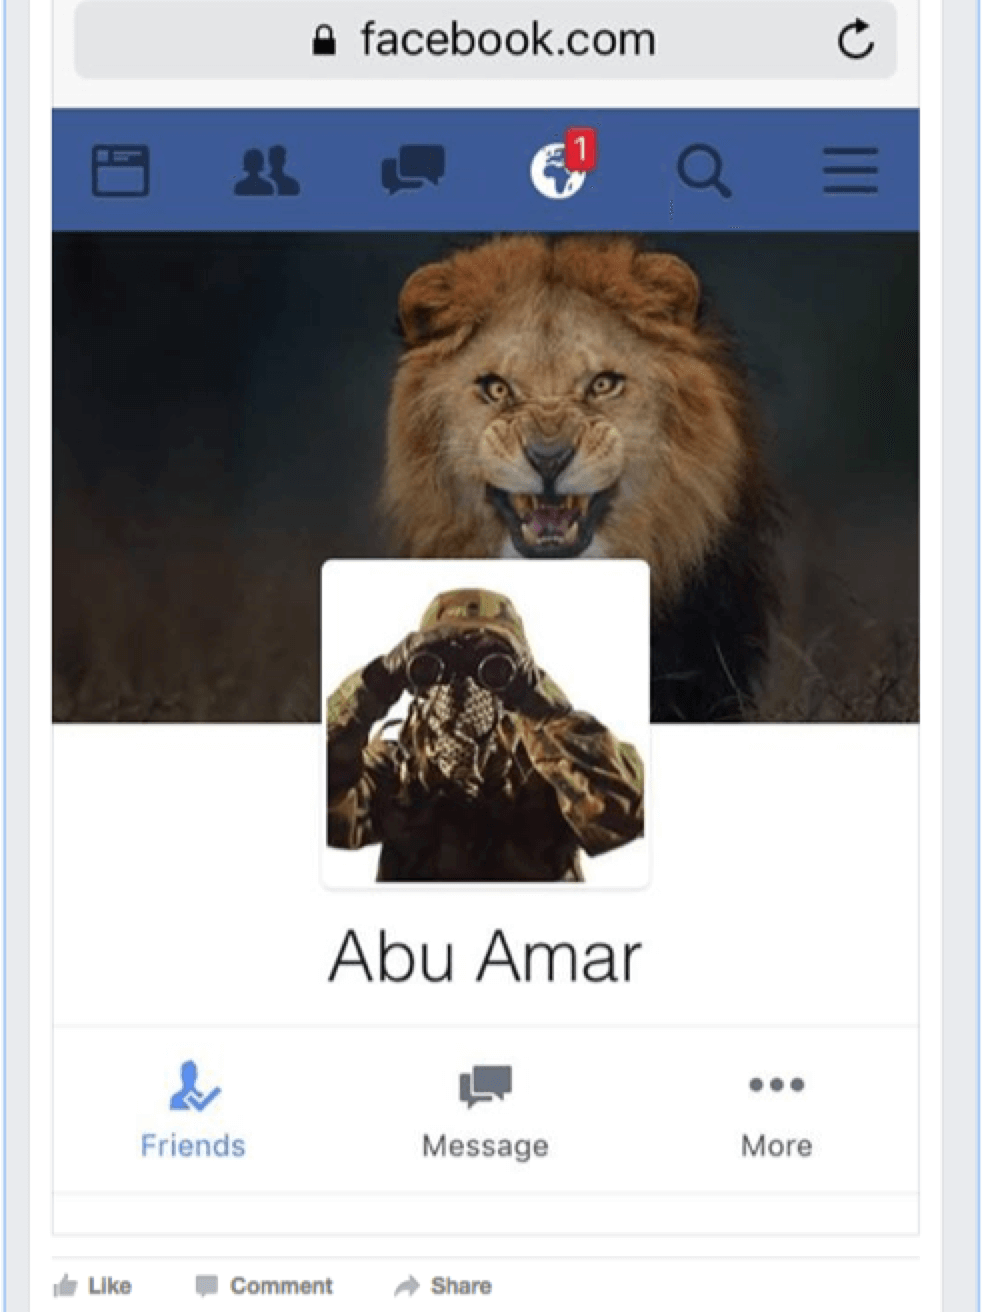 Bringing Down The Digital Caliphate: A Breaking The ISIS Brand Counter-Narratives Intervention With Albanian Speaking Facebook Accounts